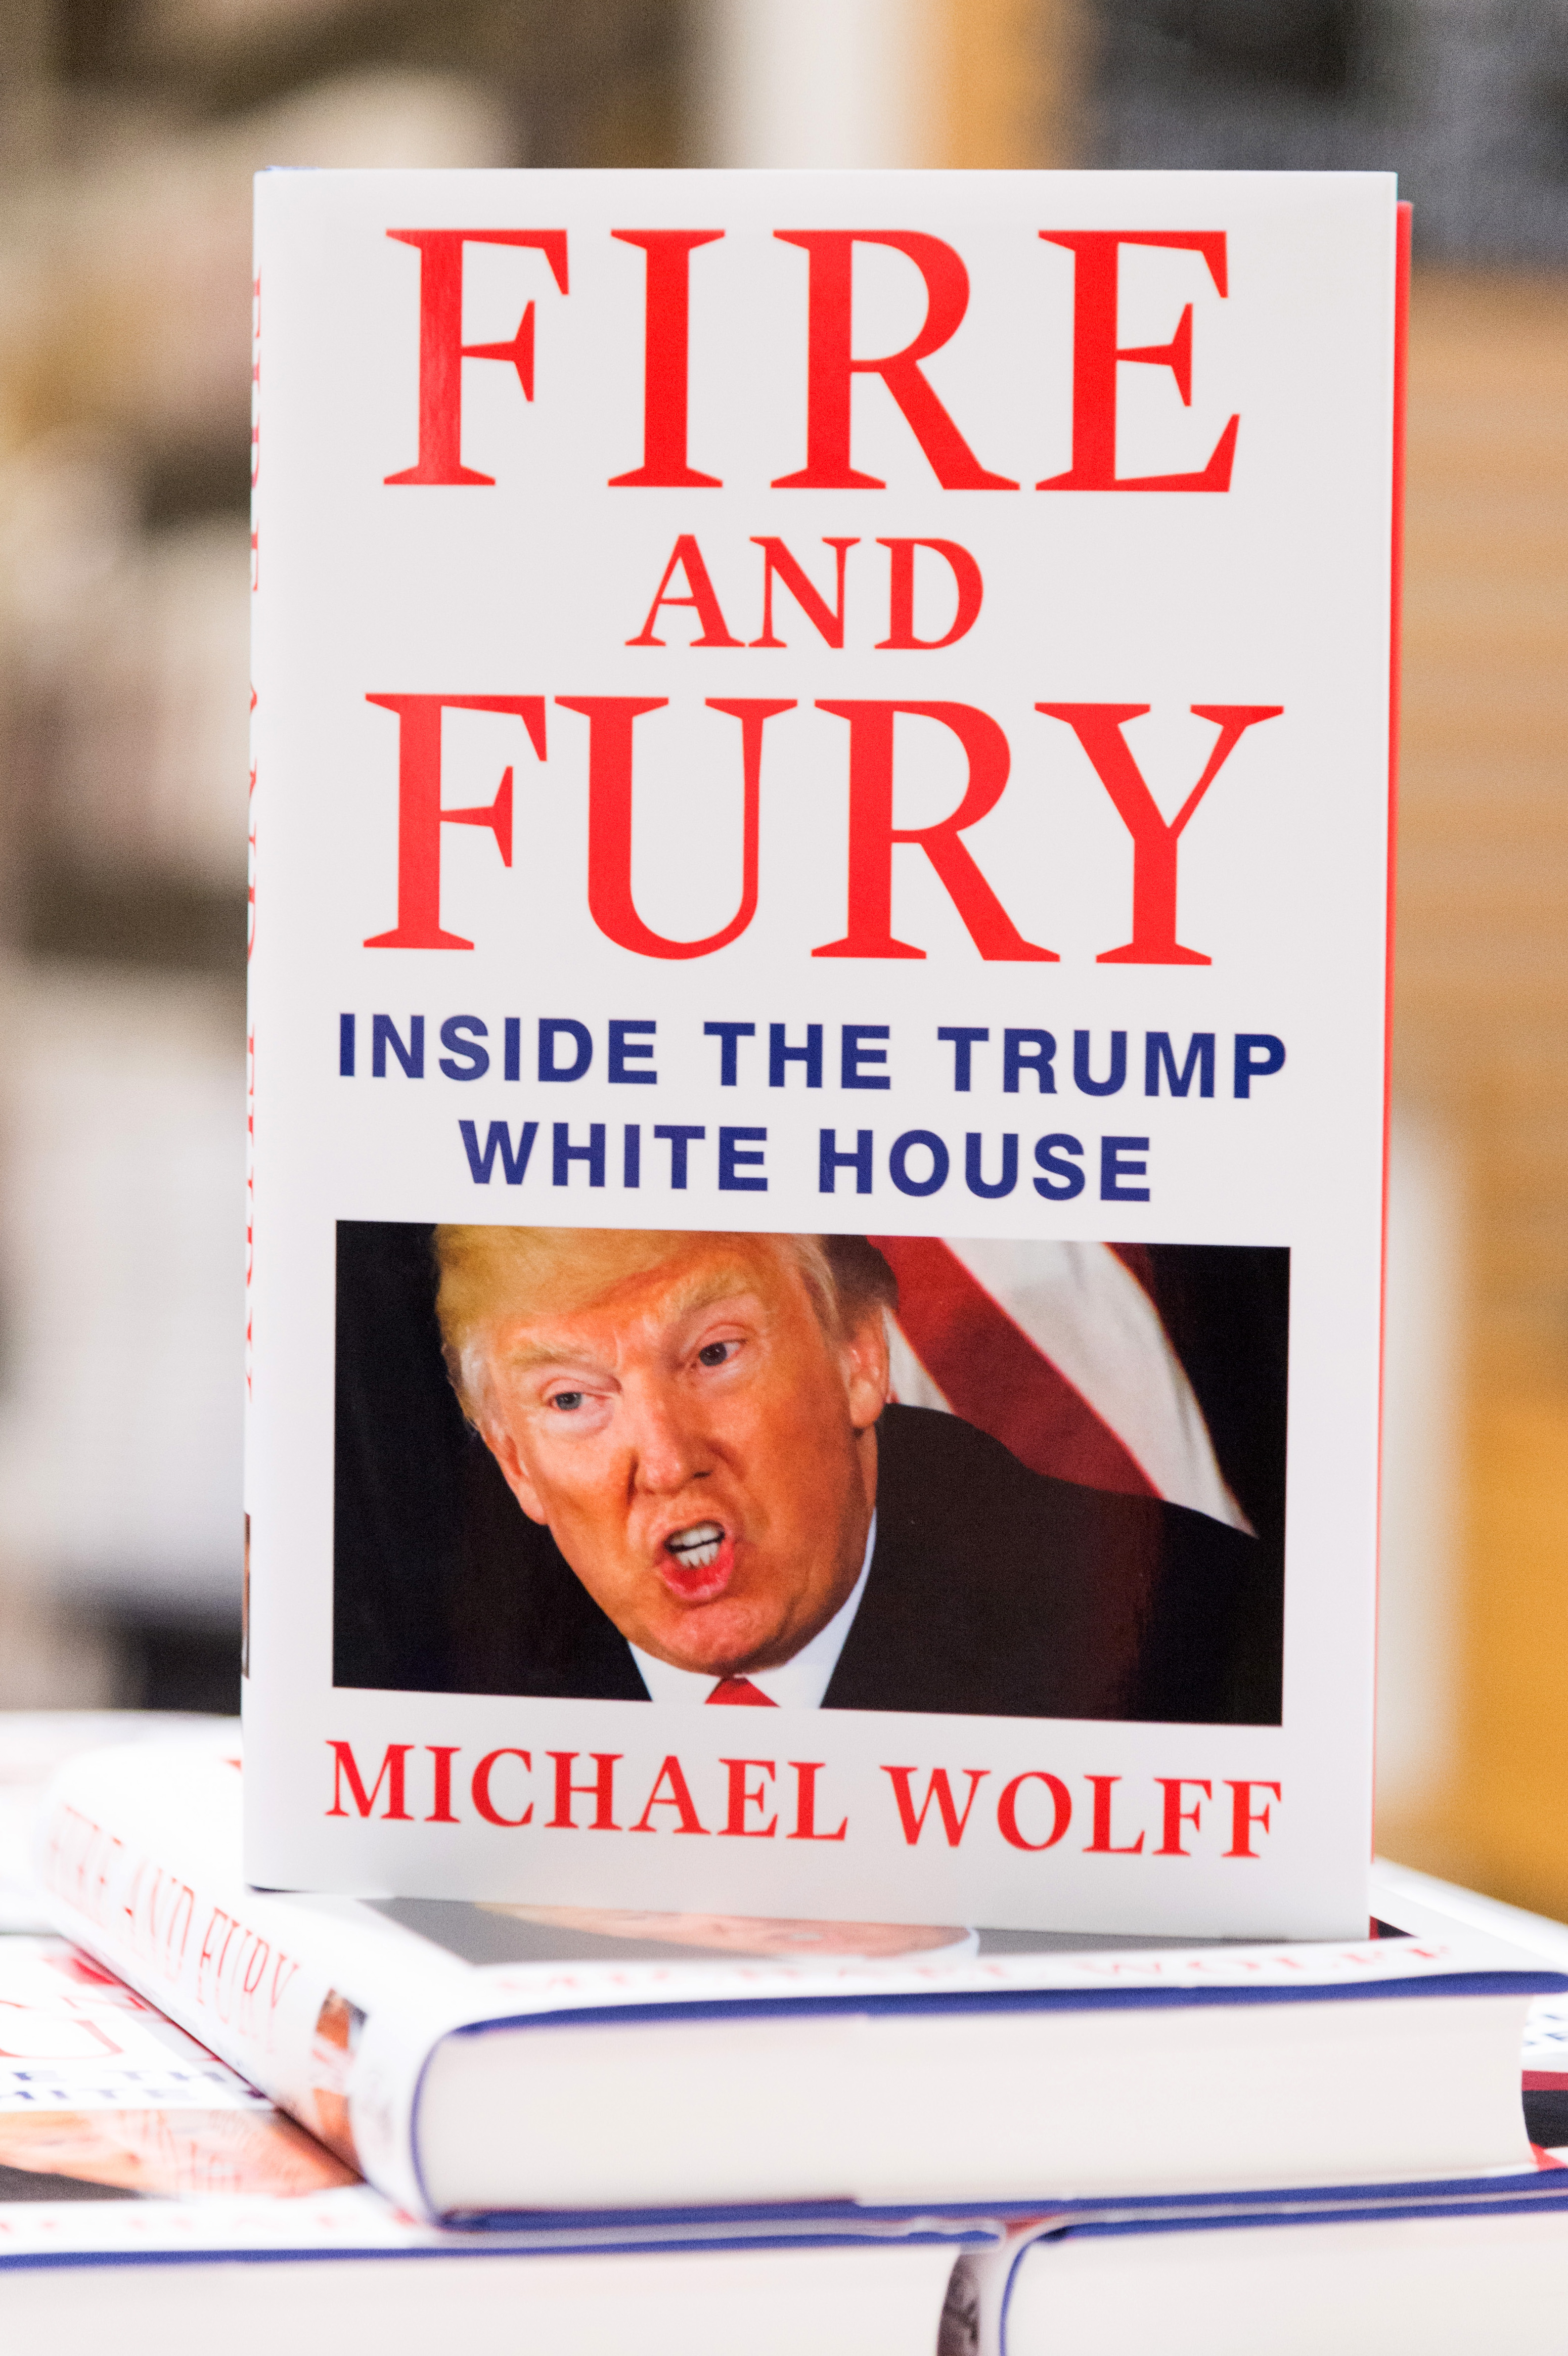 January 9, 2018 - London, London, UK - The book Launch of Fire And Fury: Inside Trump's Presidency goes on sale at Waterstone's book store in Piccadilly. Only 500 copies will be on sale today. The author Michael Wolff, writes and explosive account of the first year of newly elected president Donald Trump (Credit Image: � Ray Tang via ZUMA Press) <P> Pictured: General View <B>Ref: SPL1644123  090118  </B><BR/> Picture by: Zuma / Splash News<BR/> </P><P> <B>Splash News and Pictures</B><BR/> Los Angeles:	310-821-2666<BR/> New York:	212-619-2666<BR/> London:	870-934-2666<BR/> <span id=